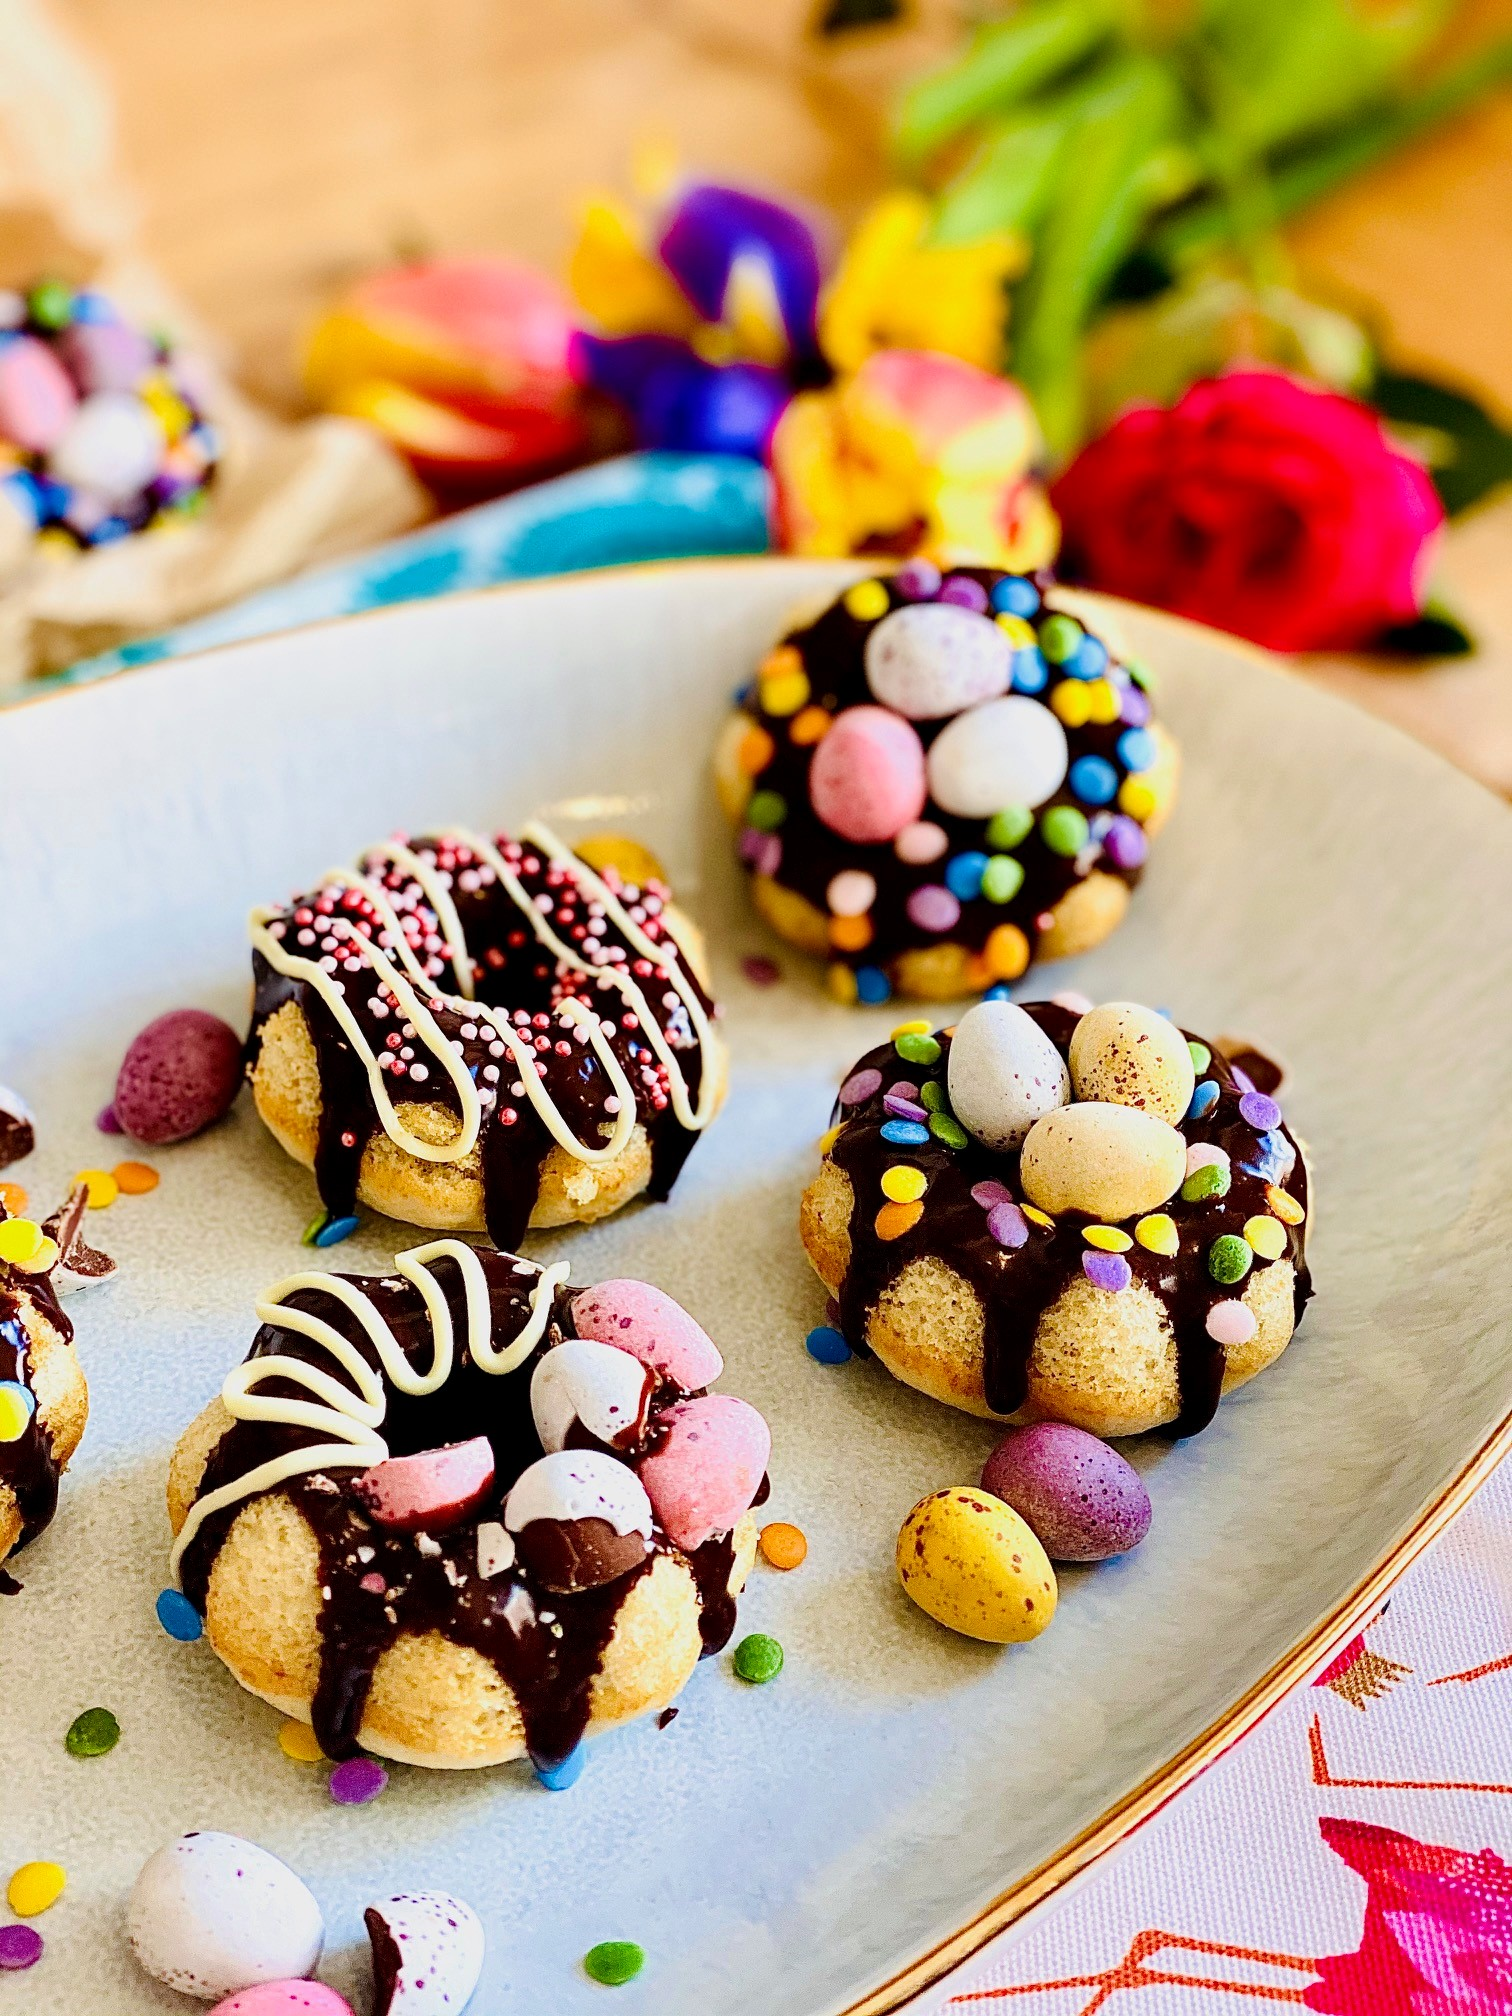 Easter baked doughnuts. Easter egg nests with a difference. Decorated with chocolate ganache, sprinkles and mini eggs